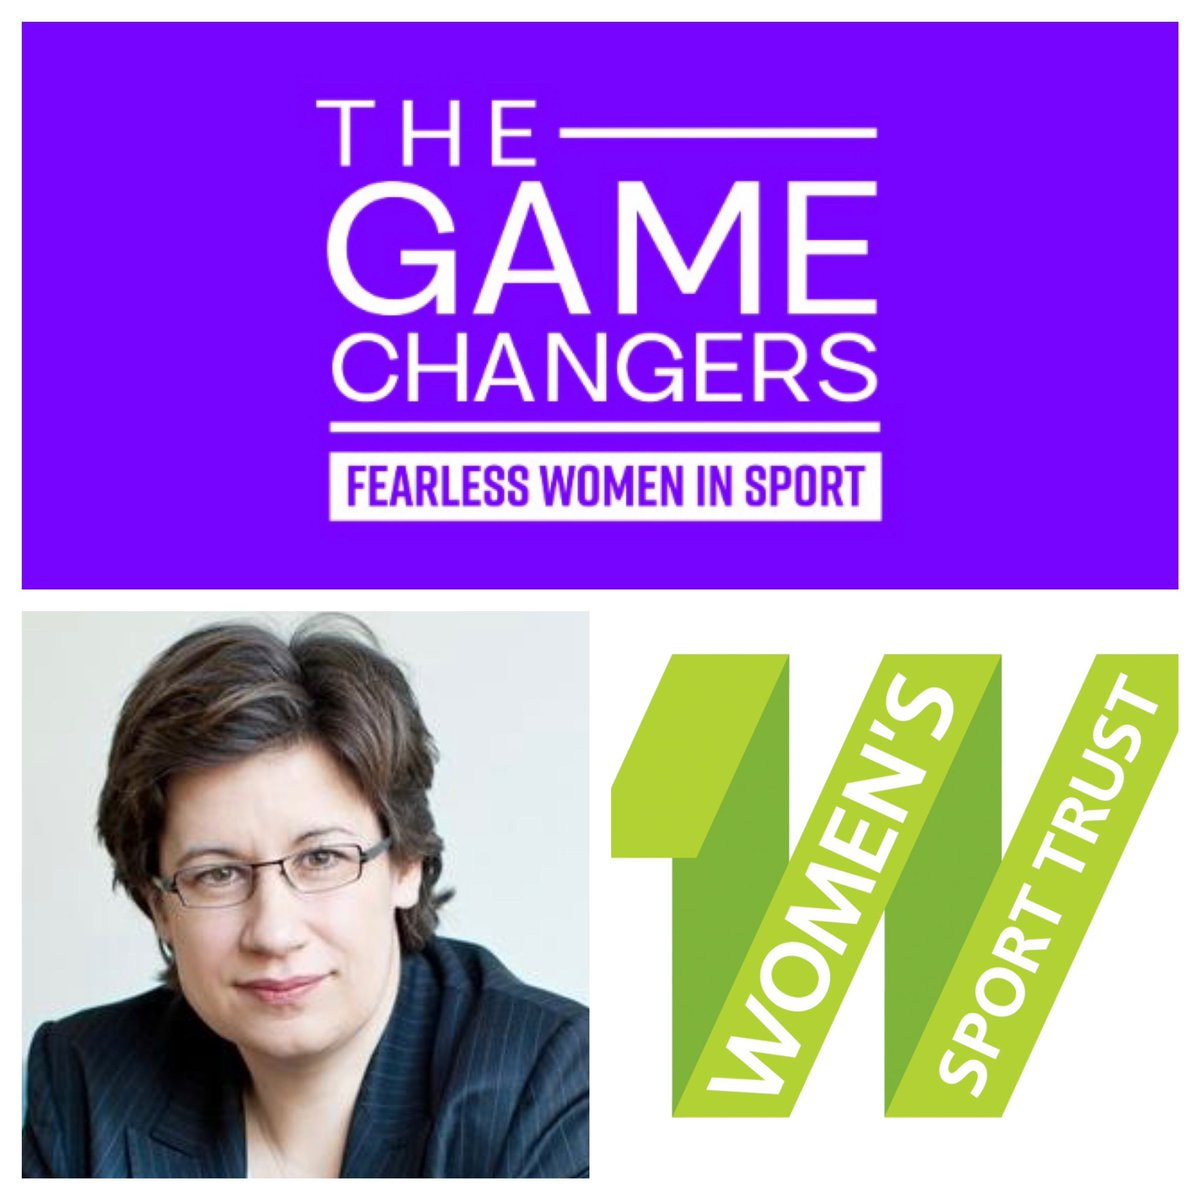 RT @sueanstiss: In 'The Game Changers' podcast today it's @Jobostock co-founder and joint CEO of @WomenSportTrust. It's a fascinating insight into the work of this brilliant young charity and highlights why women's sport matters. Available everywhere or listen here https://t.co/90t4wgl3nO